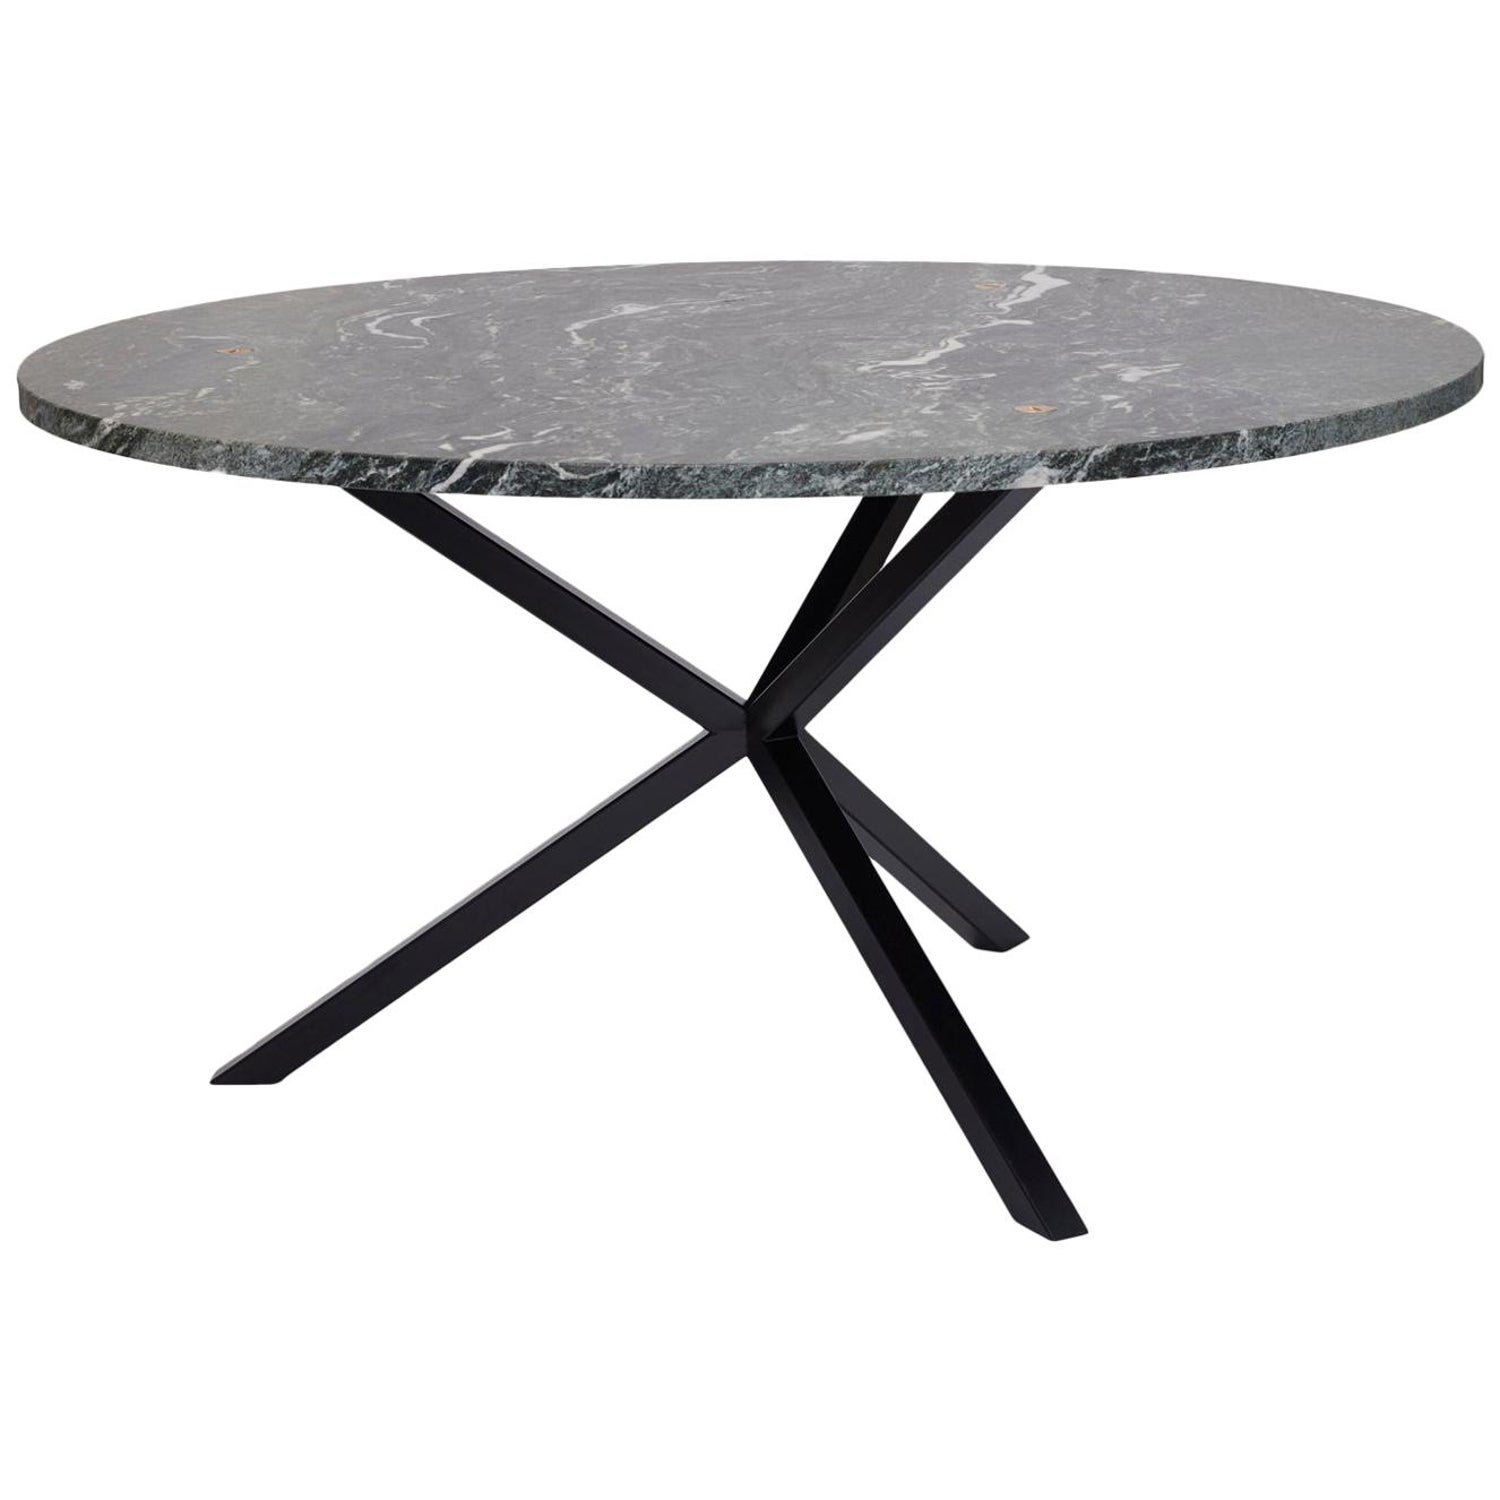 Contemporary neb round dining table stone top and metal legs by per soderberg for sale at 1stdibs